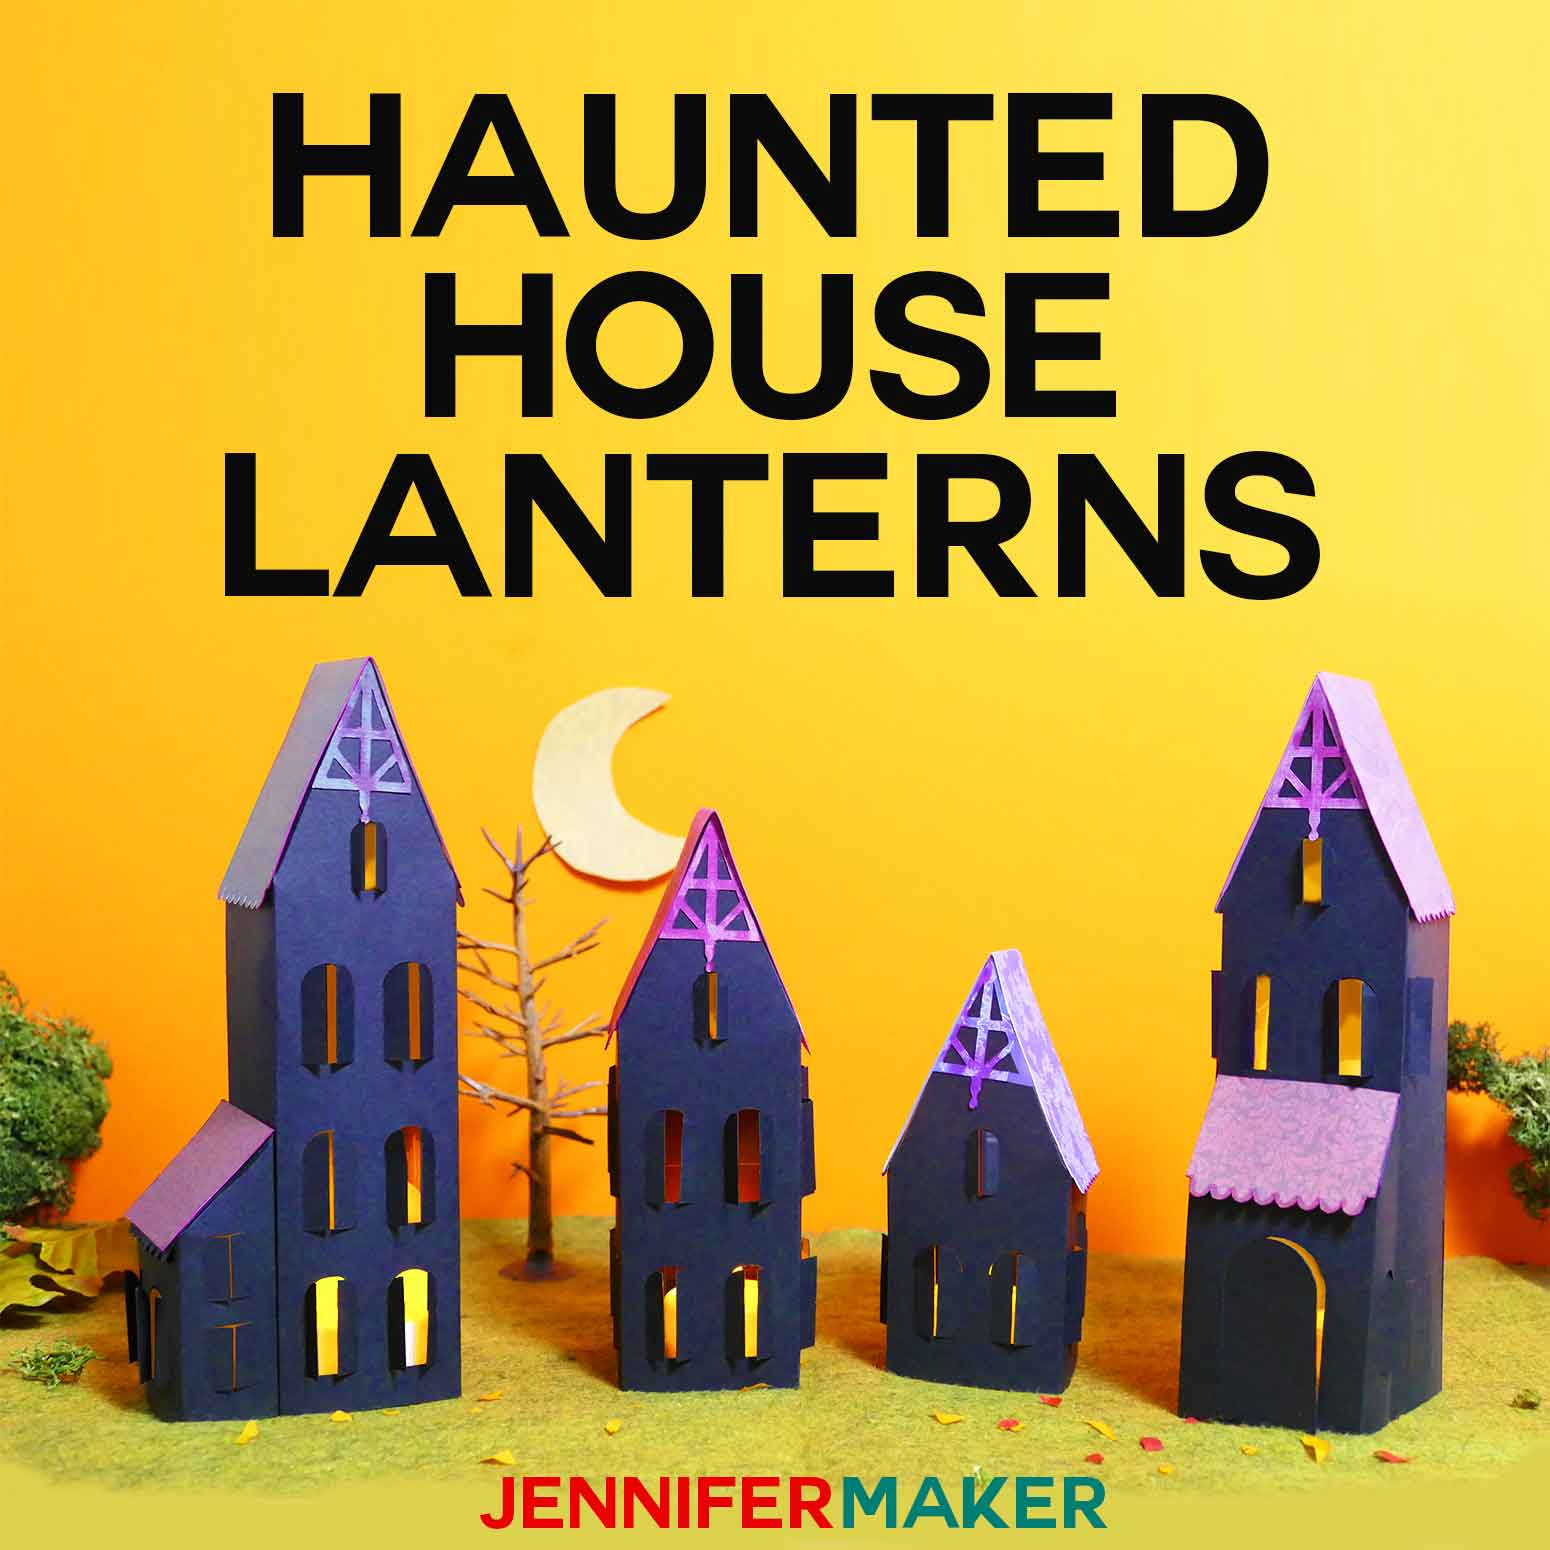 make paper haunted houses any way you want! - jennifer maker